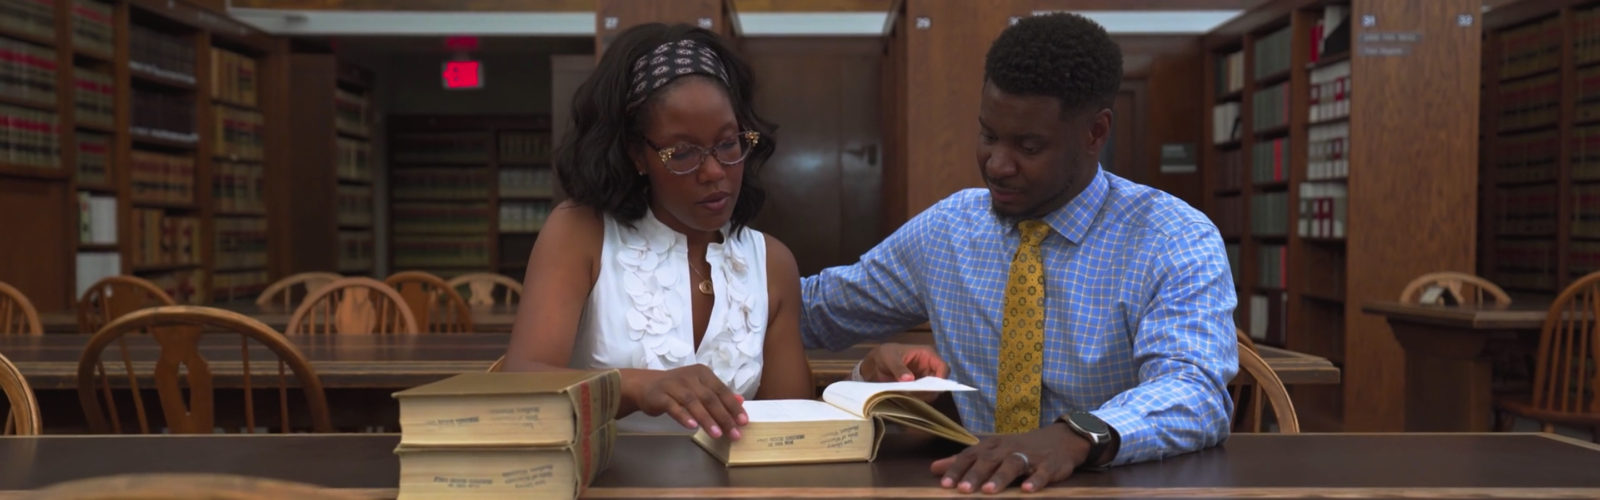 Manka and Everett Mitchell look at a law book together in a library.